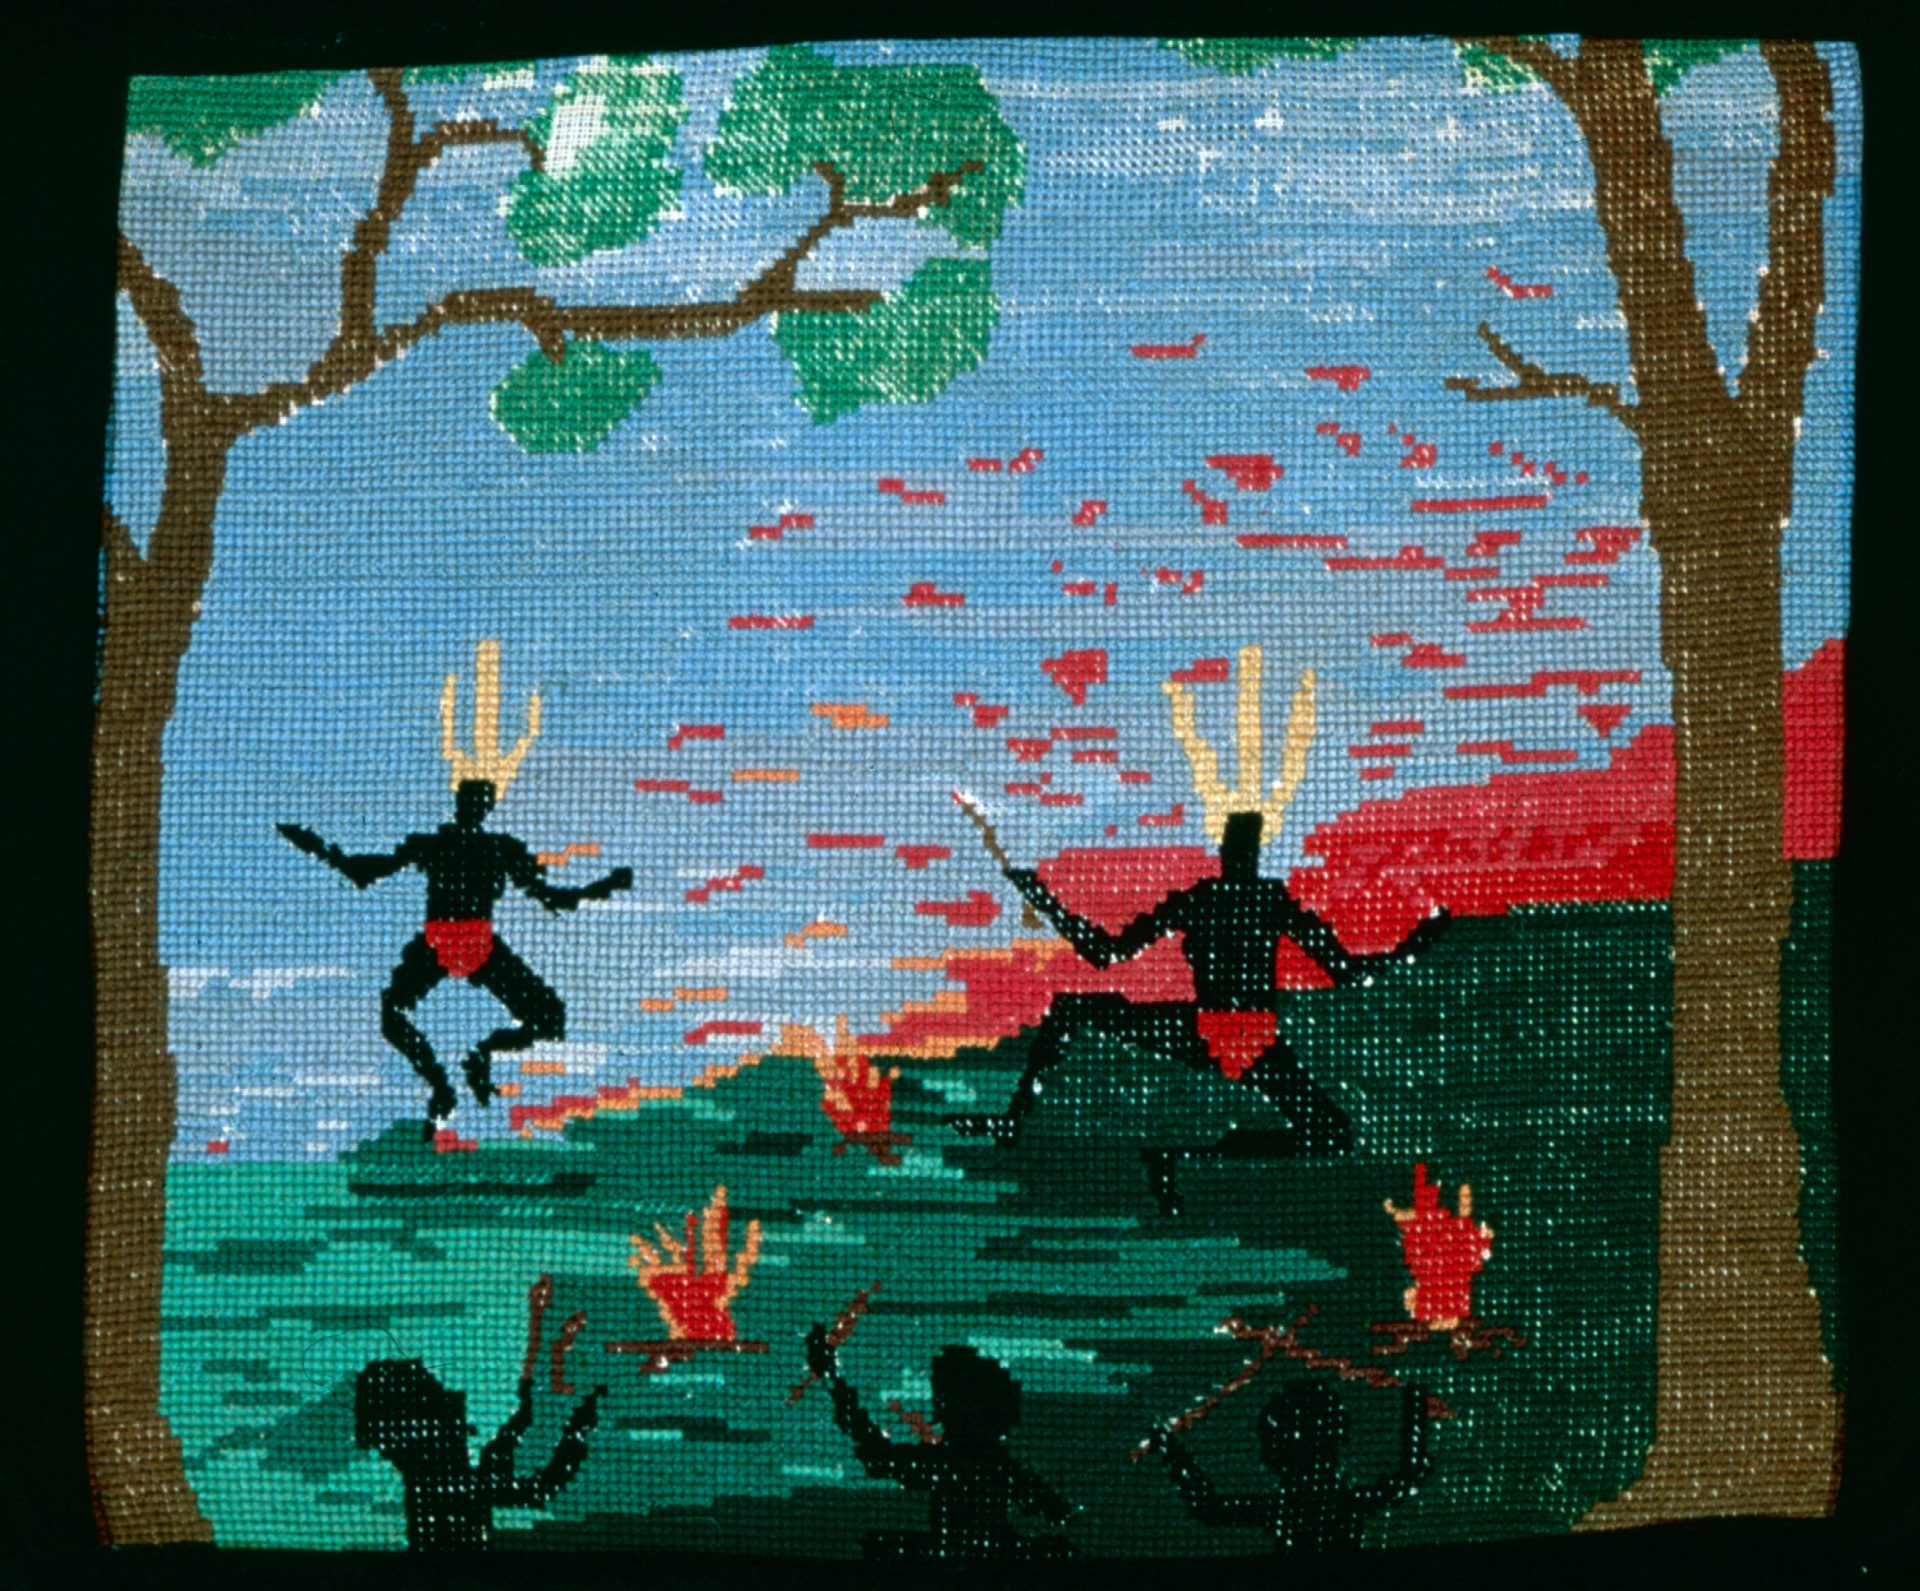 <em> Night Corroboree </em> by Vera Wallam, woollen tapestry on velvet frame, 33 x 40cm, 1948. Noel & Lily White Collection, Berndt Museum of Anthropology.